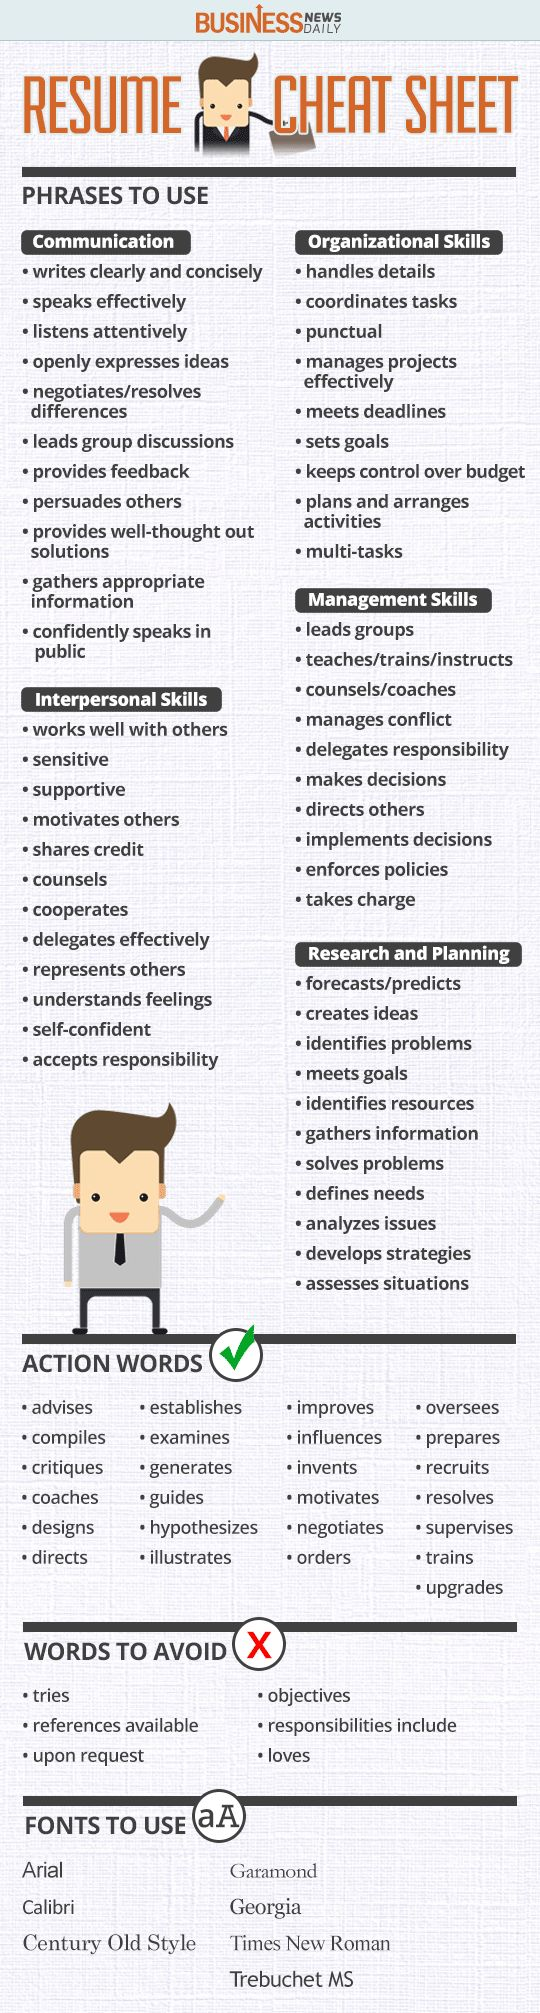 Opposenewapstandardsus  Outstanding  Ideas About Resume On Pinterest  Cv Format Resume Cv And  With Licious Resume Cheat Sheet Infographic Andrews Almost Done With A Complete Unit On Employment Which With Charming Entrepreneur Resume Also Lpn Resume Sample In Addition Business Analyst Sample Resume And Student Teaching Resume As Well As Resume Writing Service Reviews Additionally How To Format Resume From Pinterestcom With Opposenewapstandardsus  Licious  Ideas About Resume On Pinterest  Cv Format Resume Cv And  With Charming Resume Cheat Sheet Infographic Andrews Almost Done With A Complete Unit On Employment Which And Outstanding Entrepreneur Resume Also Lpn Resume Sample In Addition Business Analyst Sample Resume From Pinterestcom